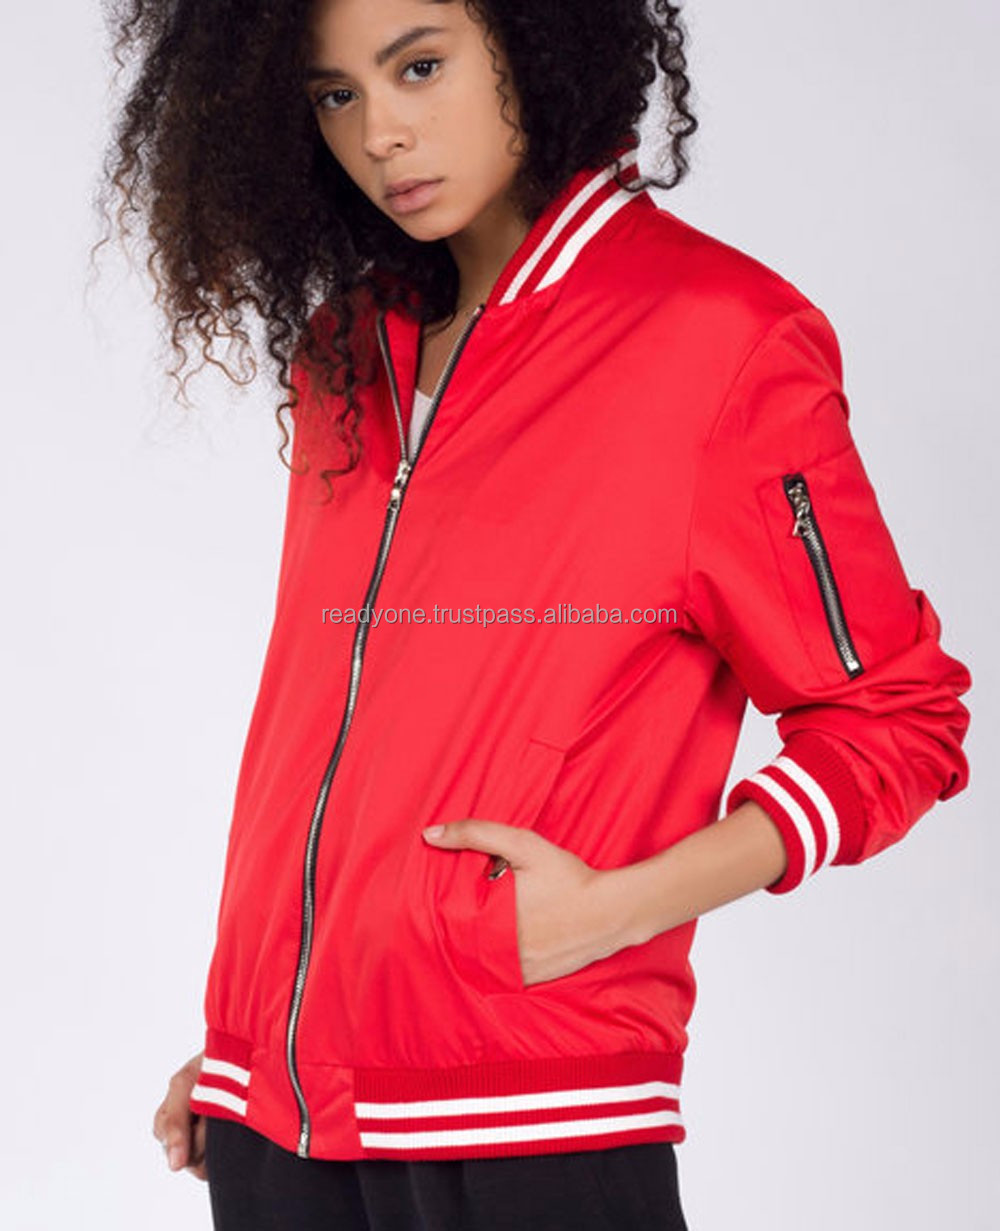 custom youth size varsity jacket fancy jackets for women korean sportswear